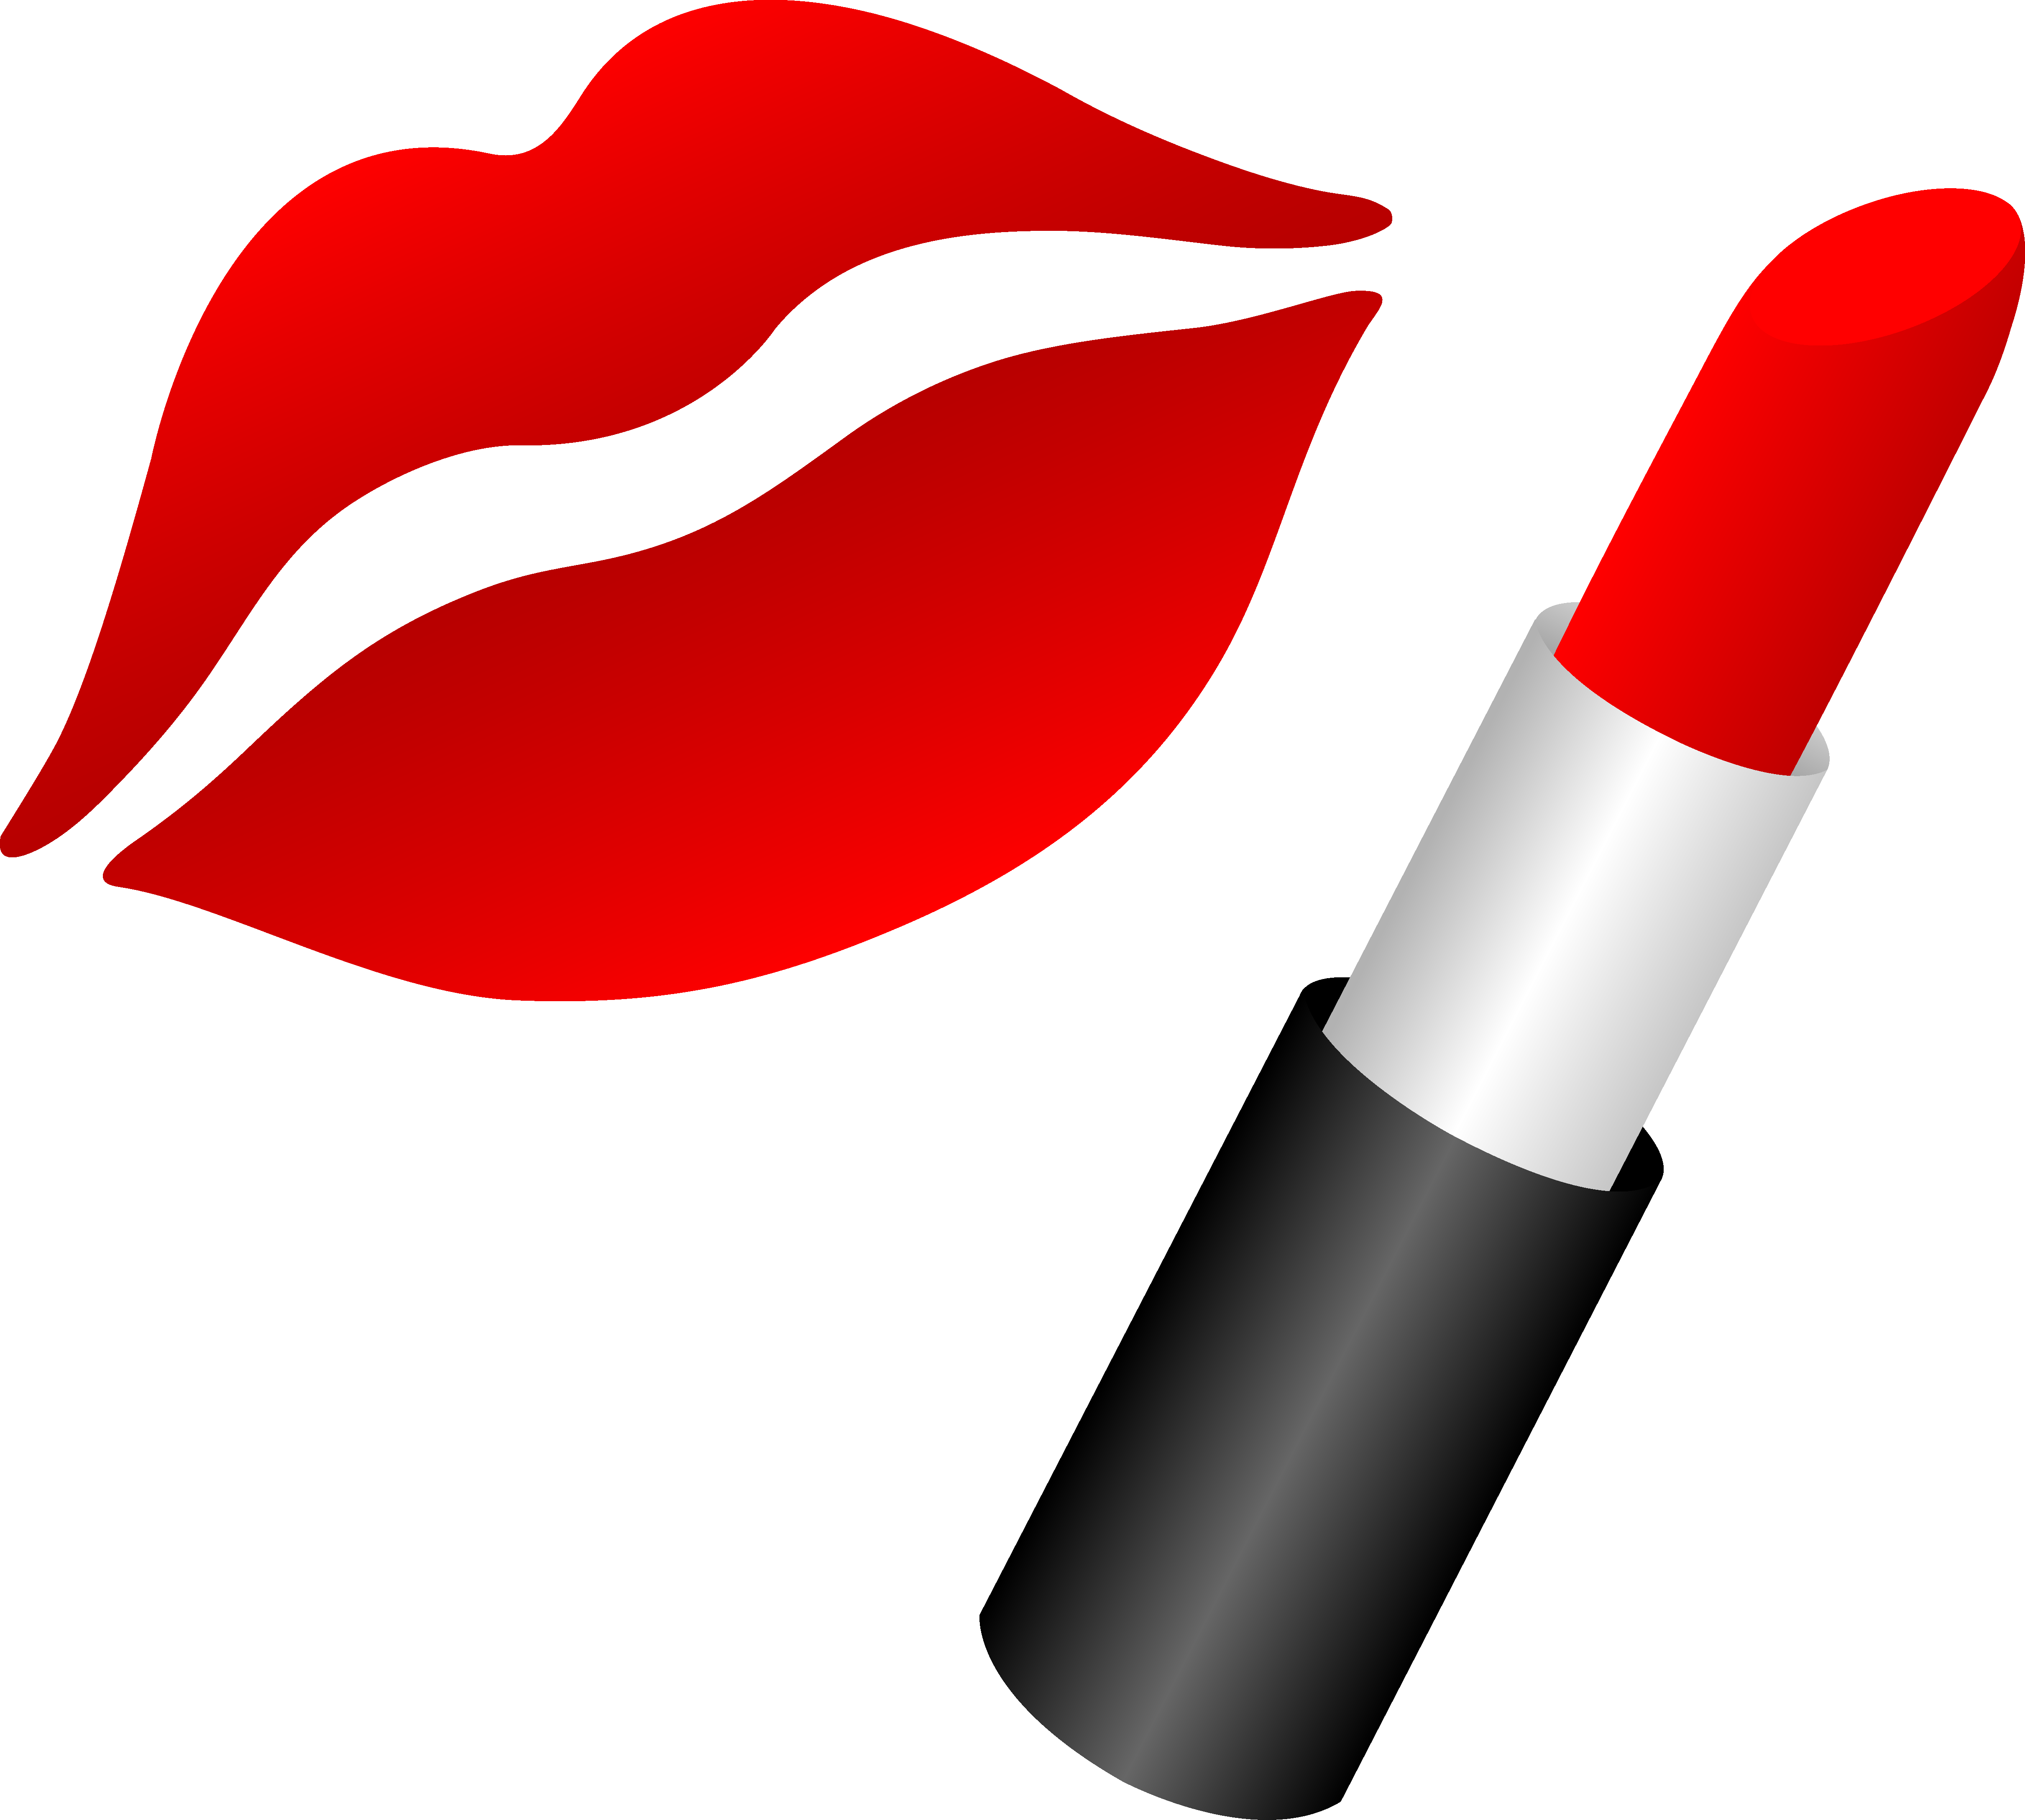 lips with red lipstick free clip art red lips pinterest clip rh pinterest com makeup clipart black and white makeup clip art free